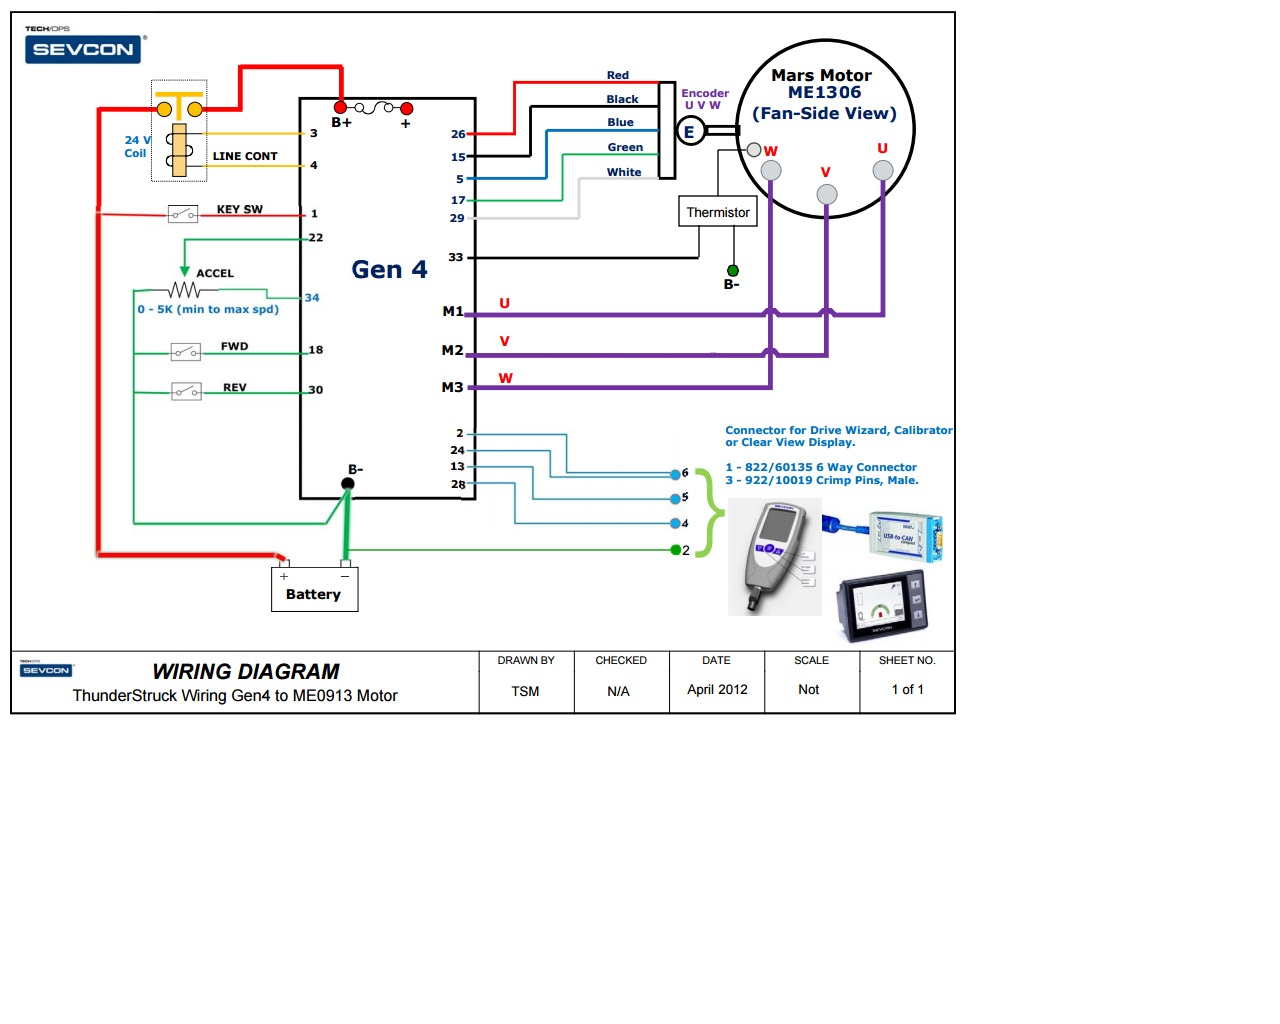 ev wiring diagram ac dc diagram data schemathunderstruck motors manuals u0026 data sheets ev wiring [ 1280 x 1024 Pixel ]